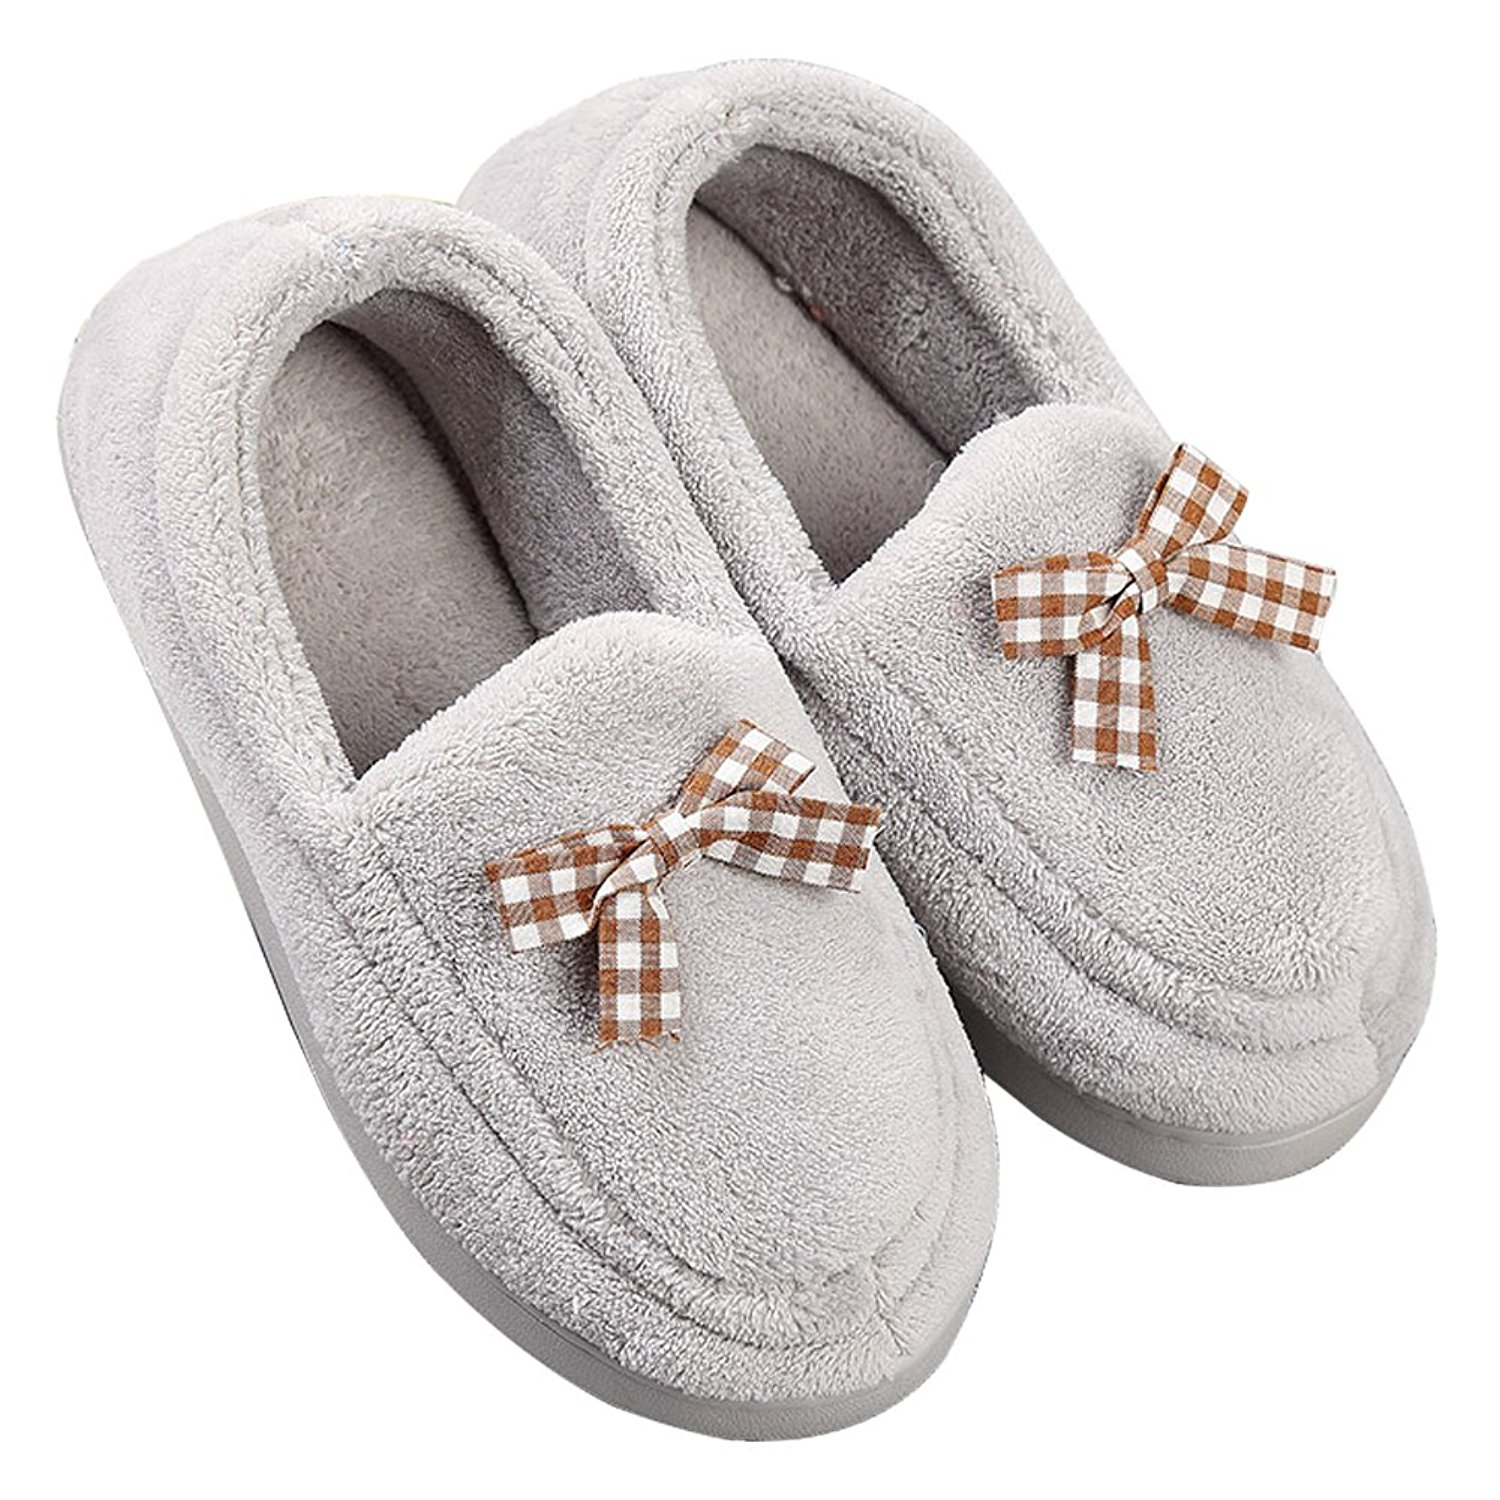 MOCHA SHOP Winter warm slippers, Women slippers, Cotton House Slippers, Warm Soft Slipper for Indoor